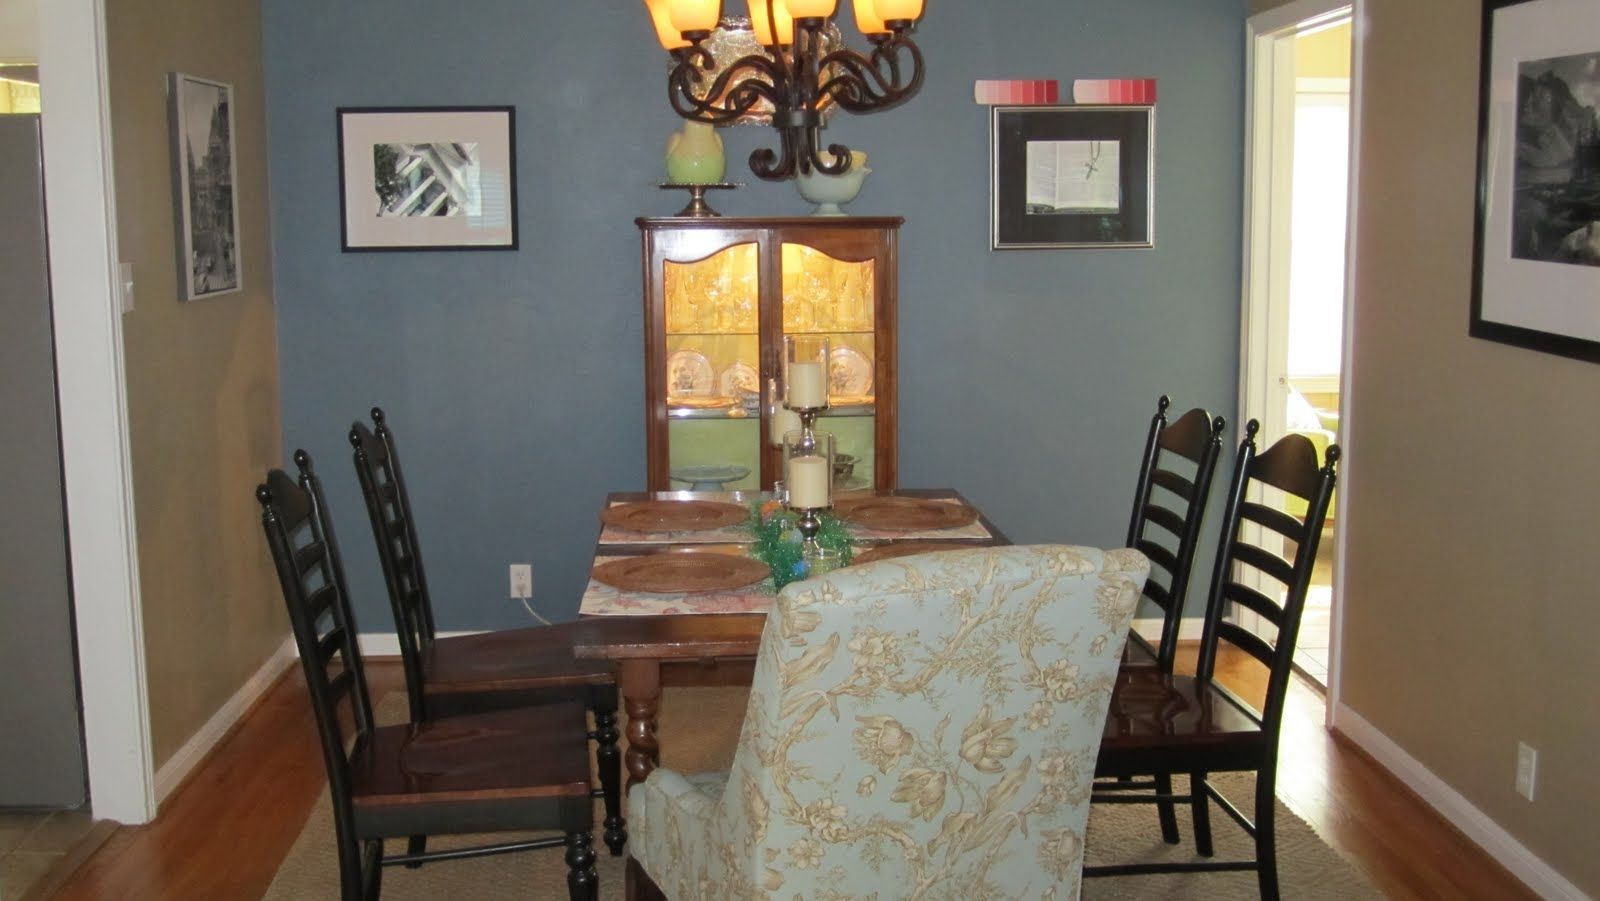 Dining Room Paint Ideas Green Picture of Home Design idvd.co